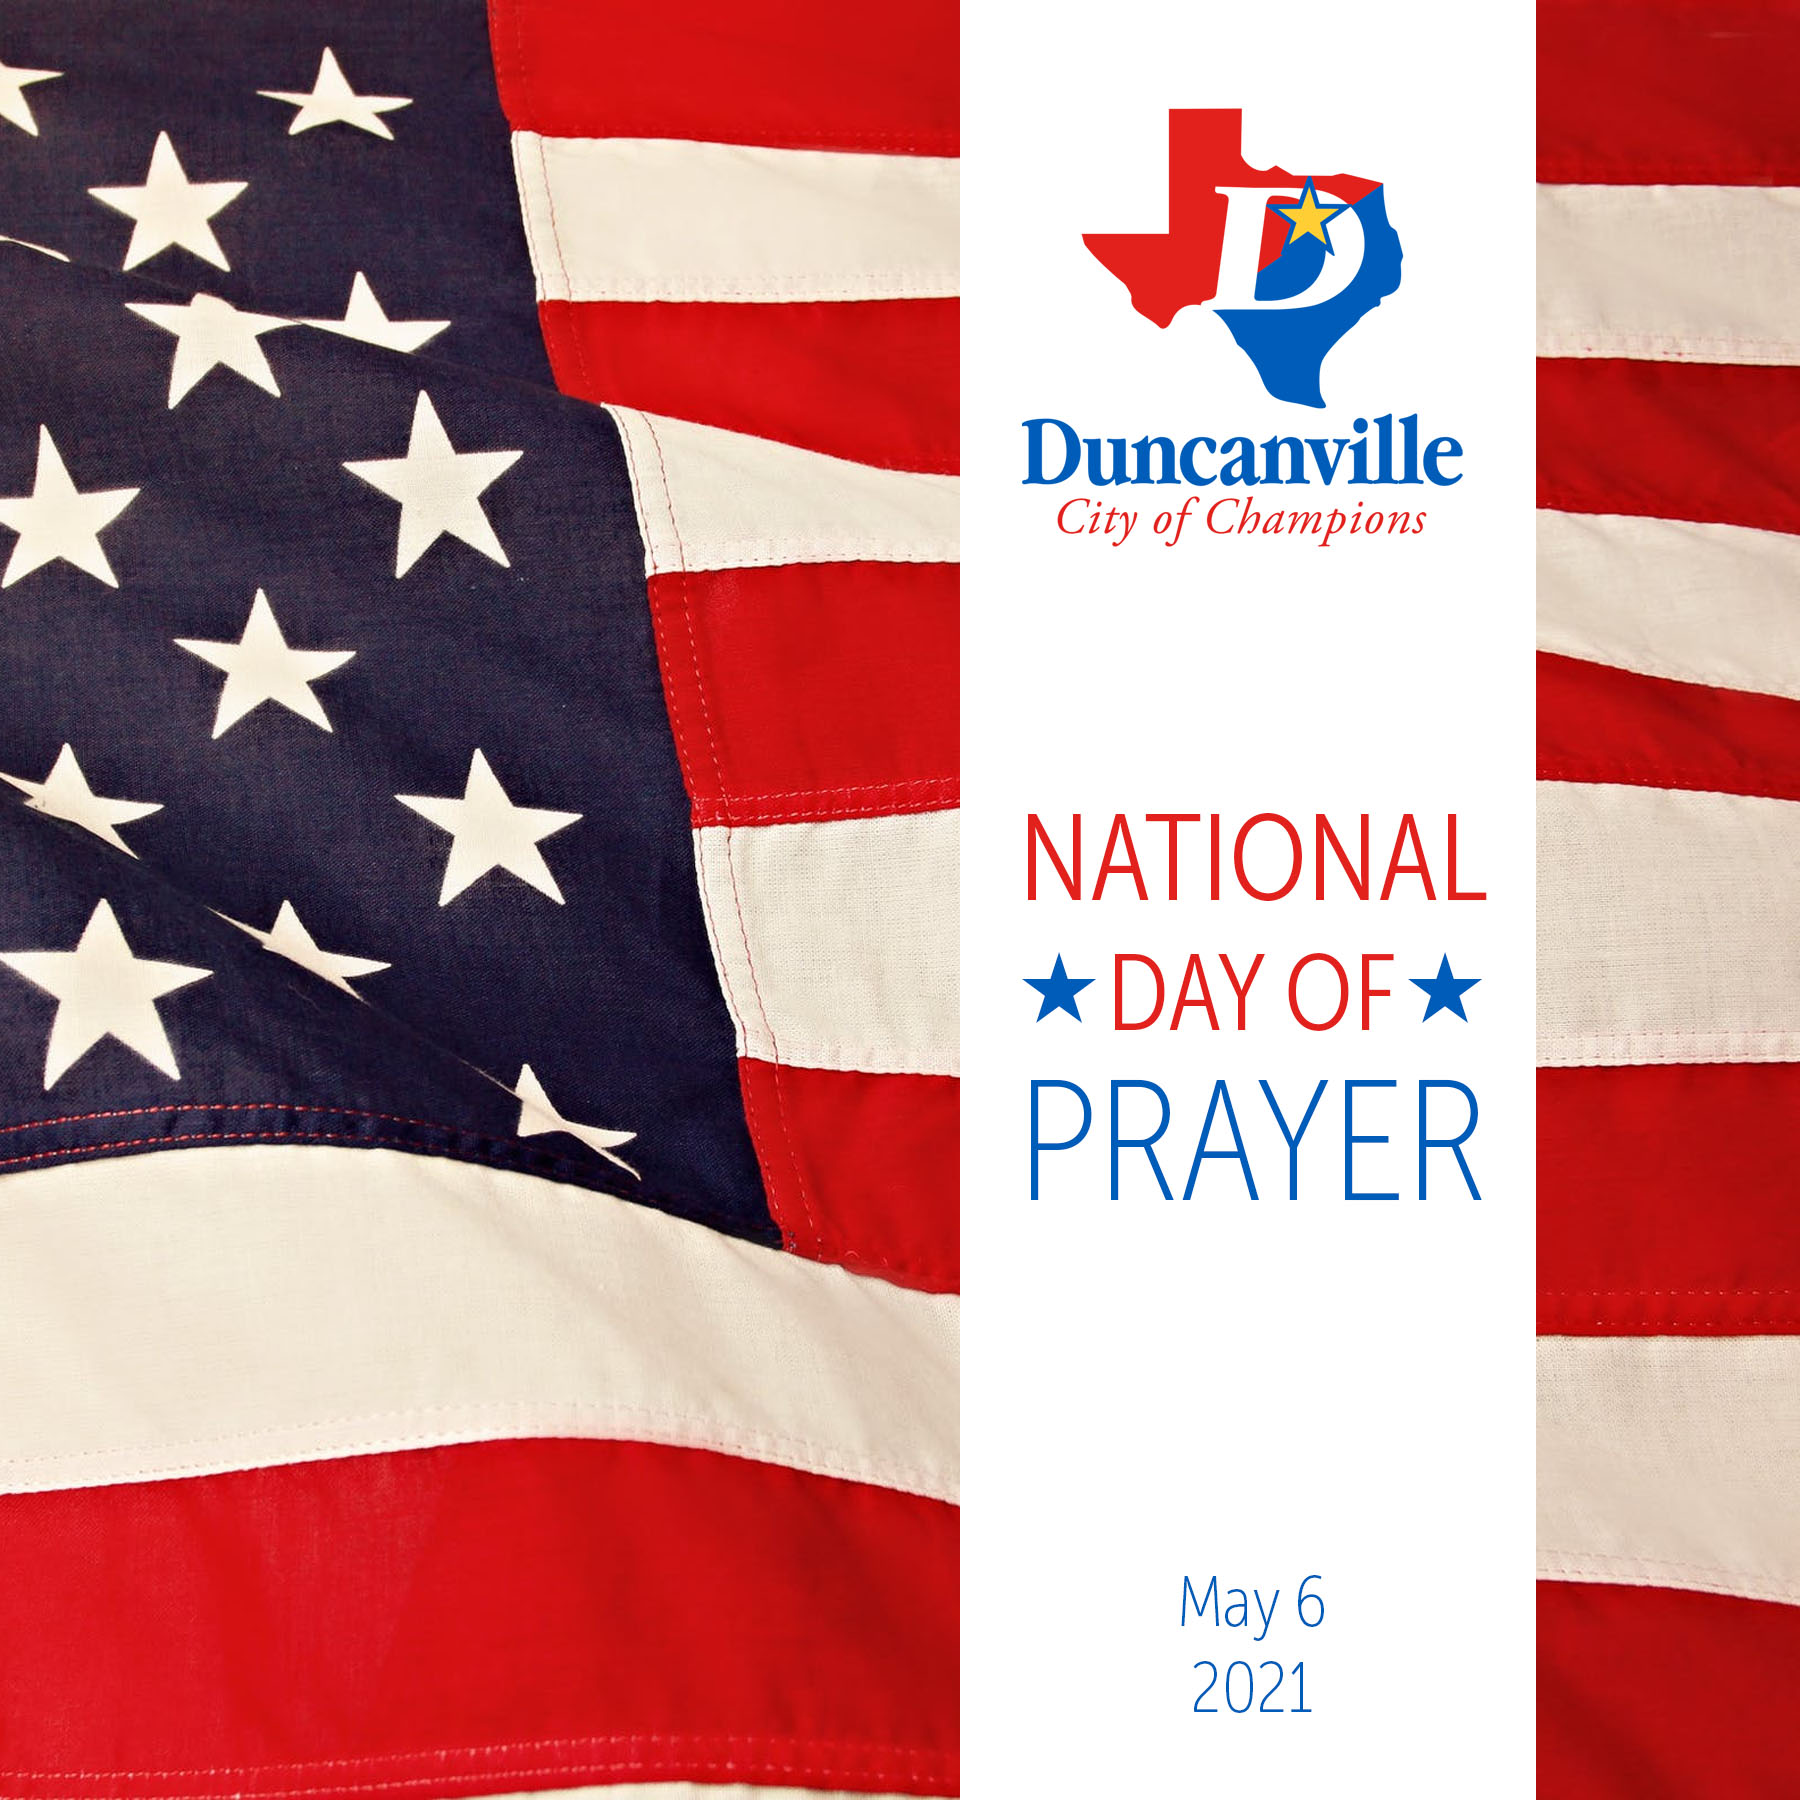 National Day of Prayer Event